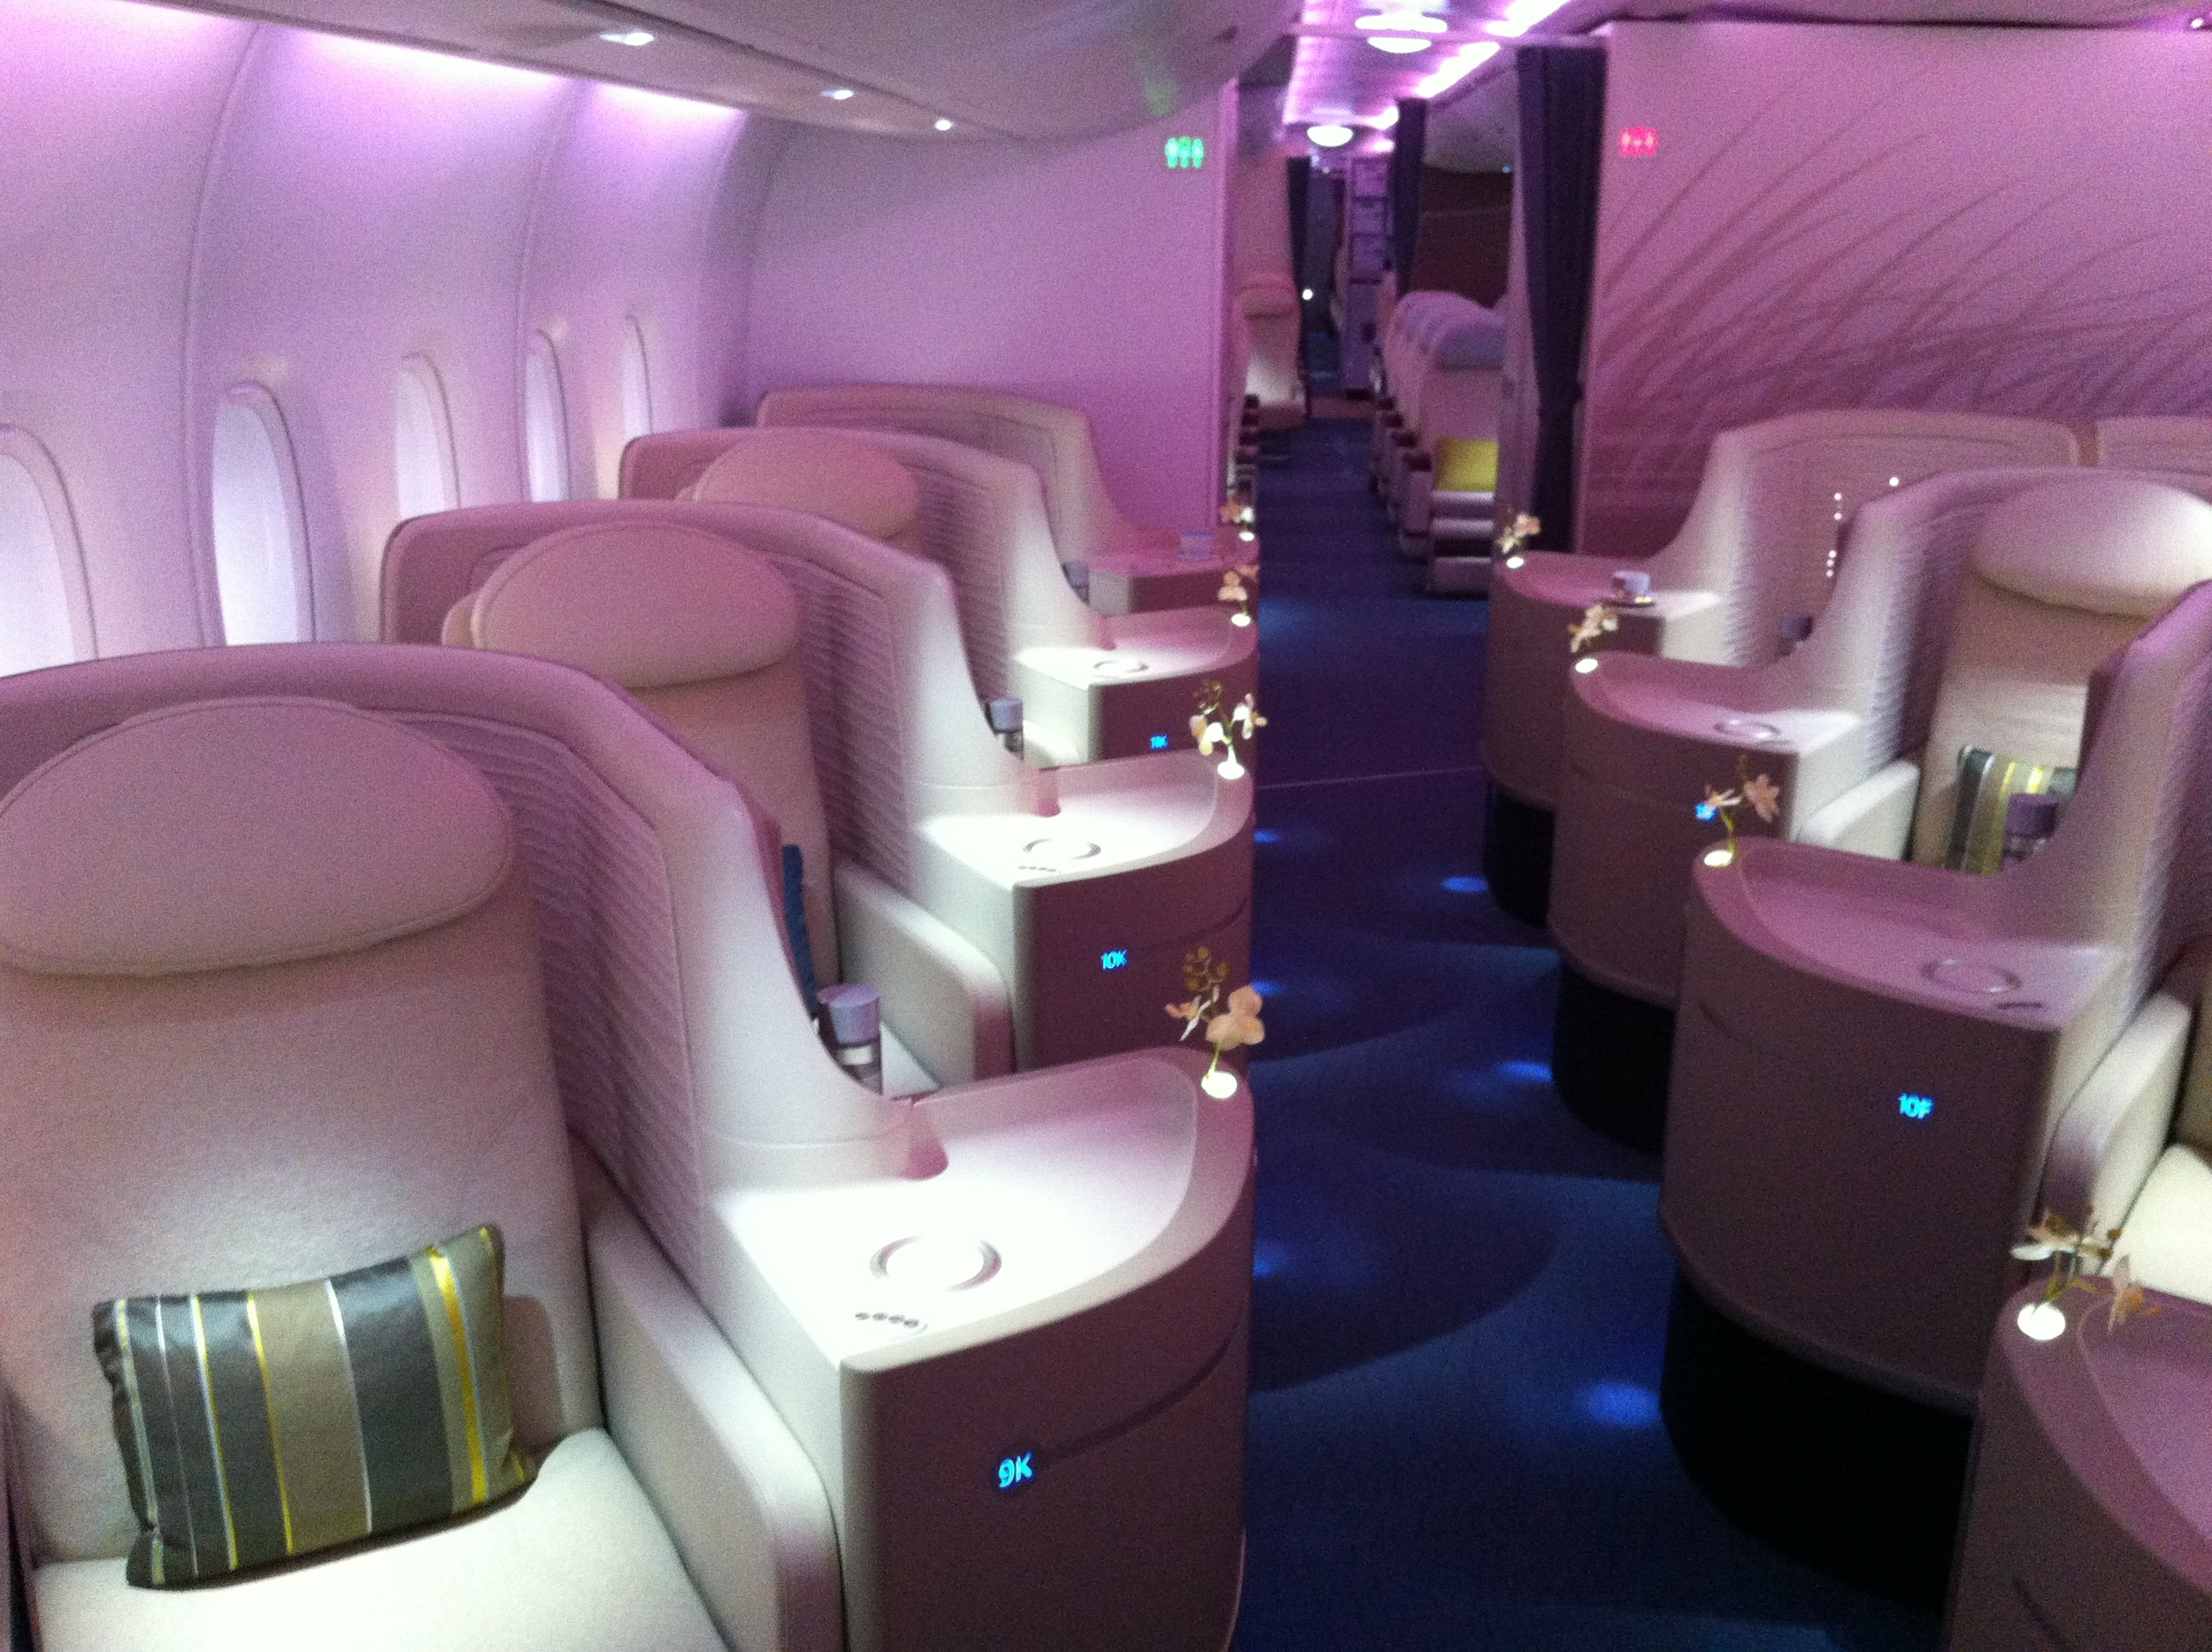 Business class mock-up cabin at Airbus design center